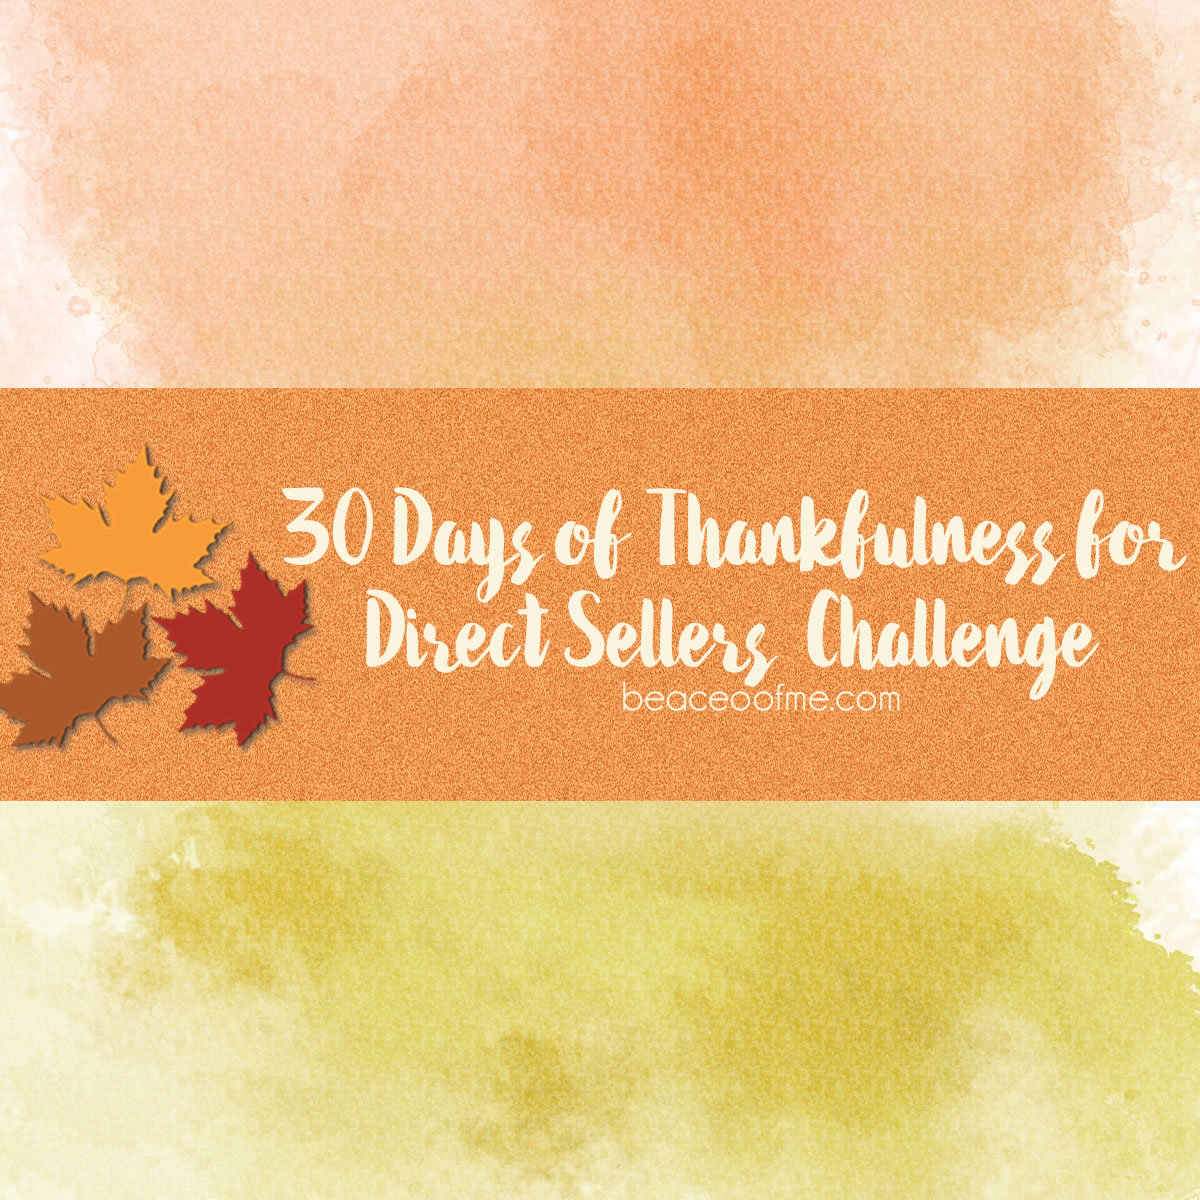 30 Days of Thankfulness Challenge for Direct Sellers Free Printable